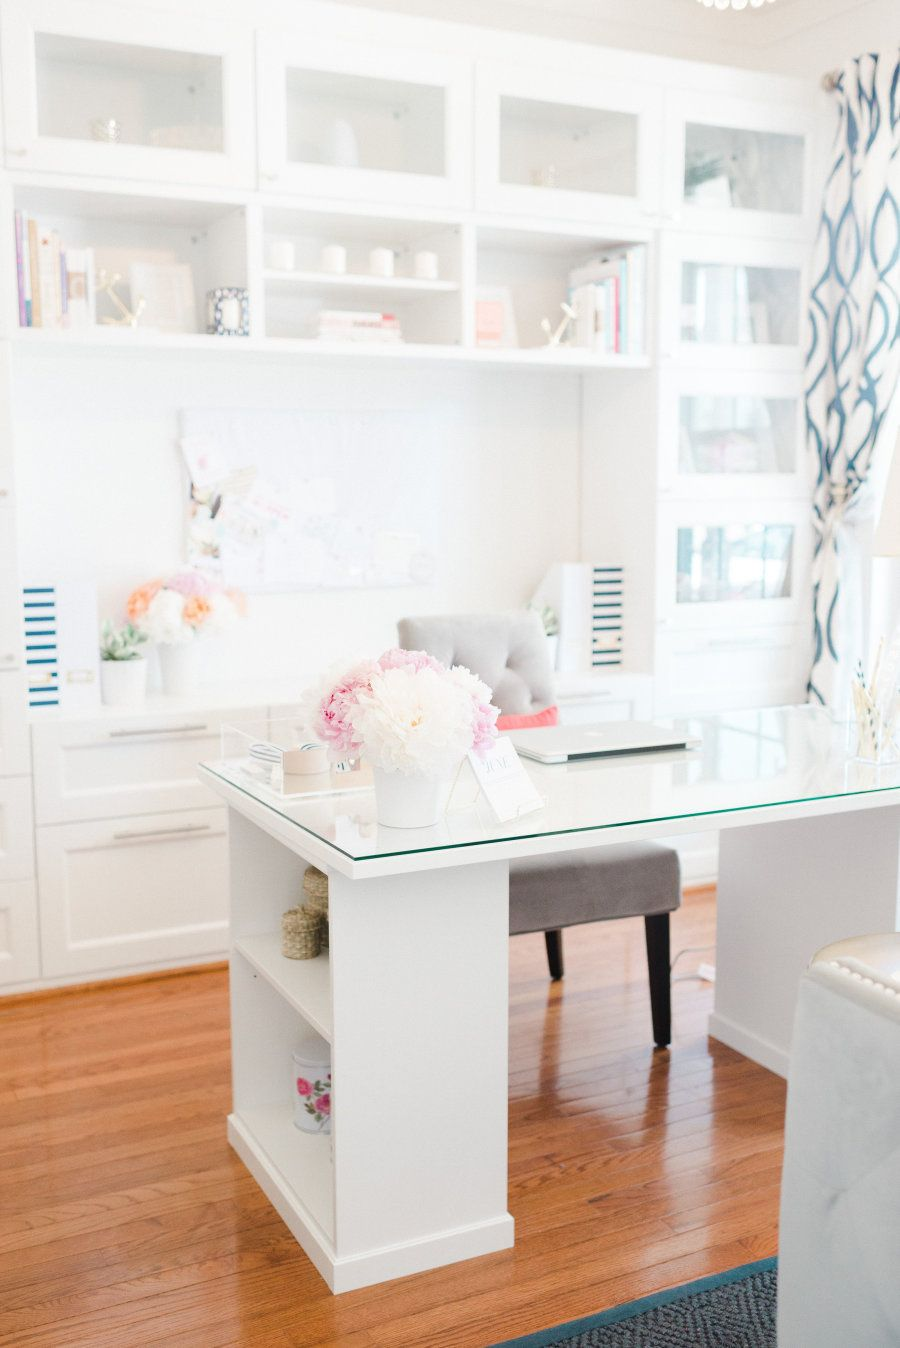 Home Office Tour of Hello Love Events Photography Office spaces